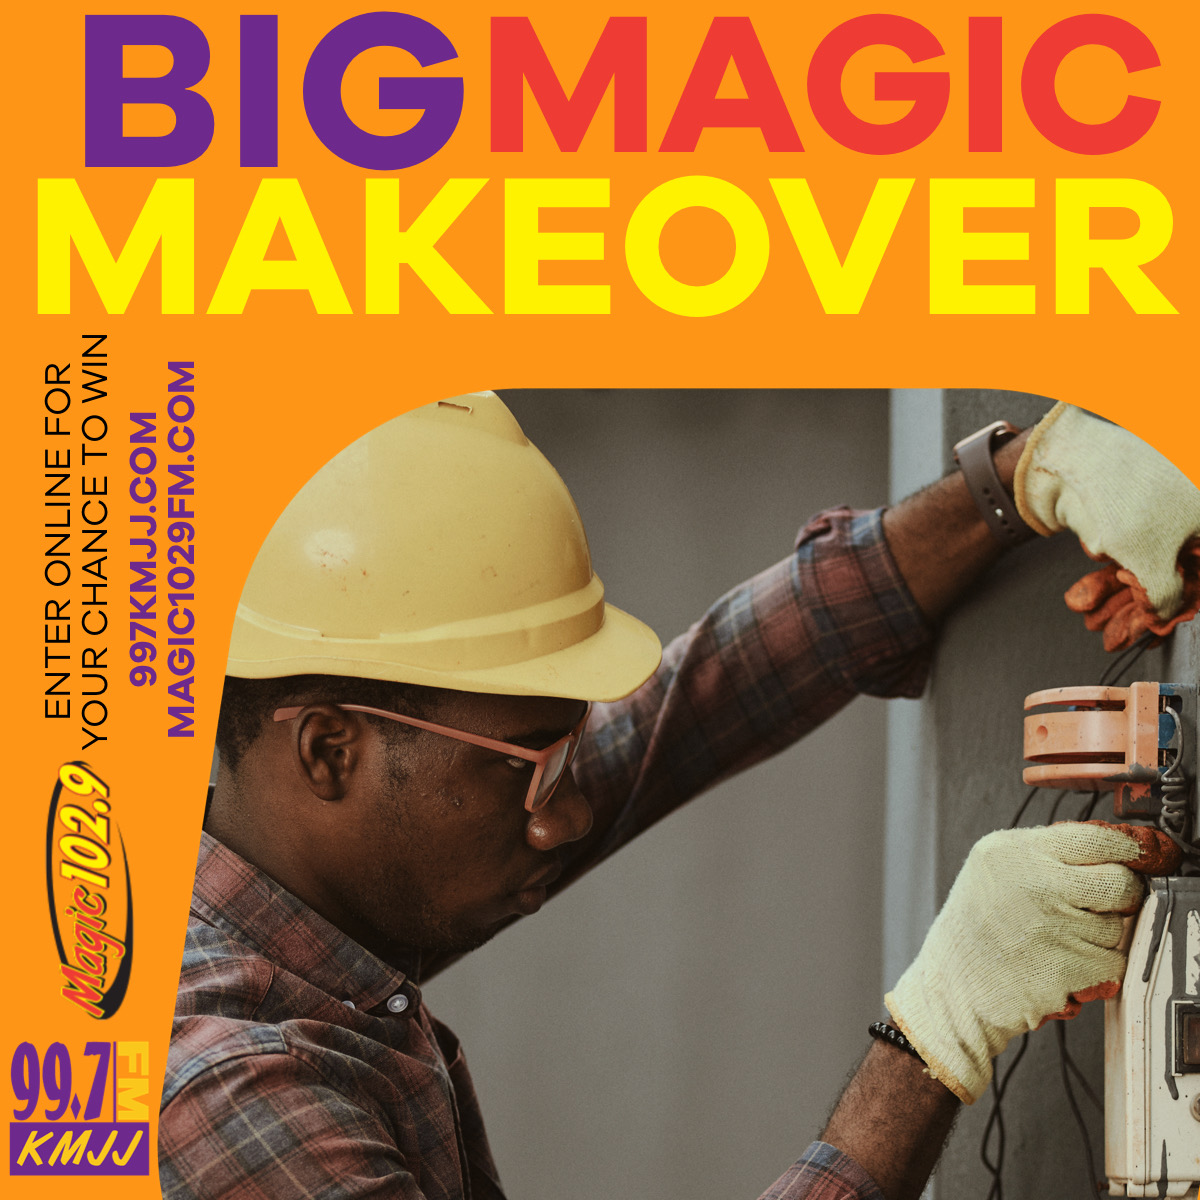 ENTER HERE TO WIN THE BIG MAGIC MAKEOVER